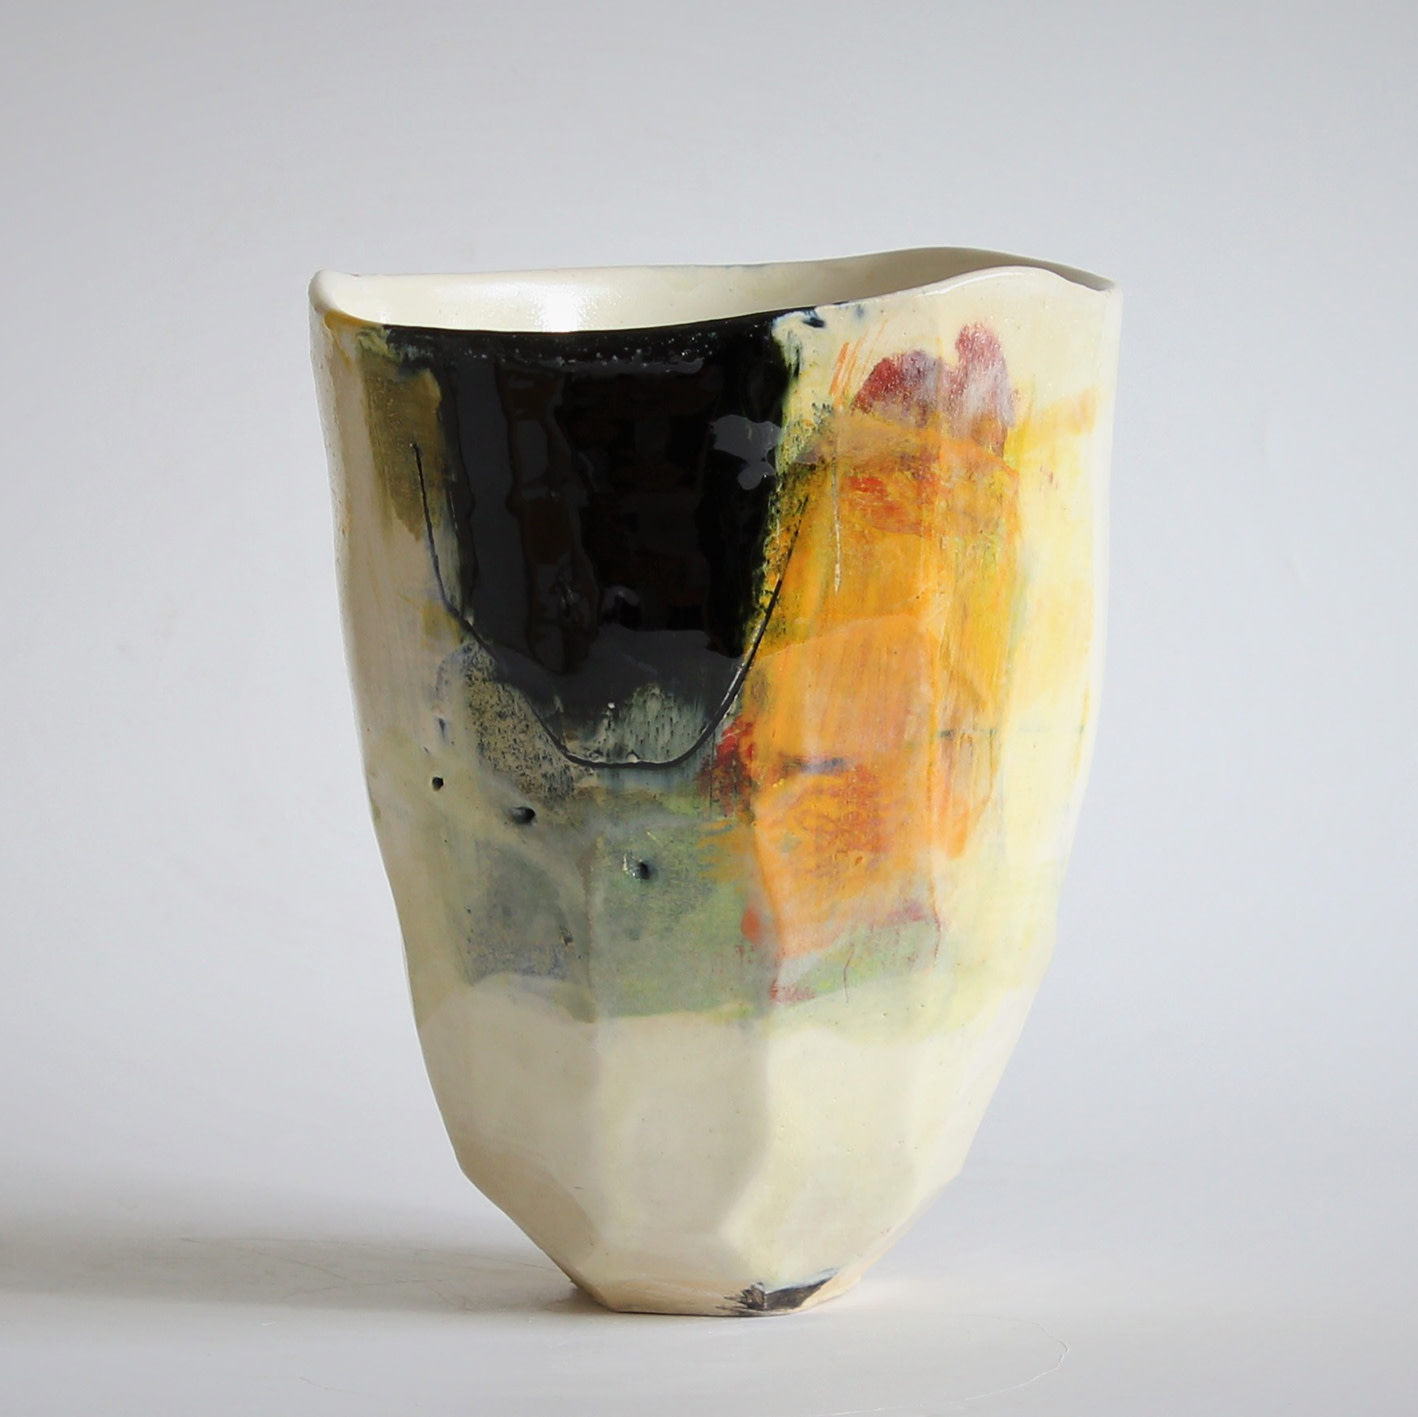 "<span class=""link fancybox-details-link""><a href=""/artists/34-barry-stedman/works/6717-barry-stedman-each-passing-day-series-vessel-b-2019/"">View Detail Page</a></span><div class=""artist""><strong>Barry Stedman</strong></div> <div class=""title""><em>'Each Passing Day' Series Vessel (B)</em>, 2019</div> <div class=""medium"">thrown, altered earthenware</div> <div class=""dimensions"">19 x 15 cm</div><div class=""copyright_line"">Own Art: £ 29.90 x 10 Months, 0% APR</div>"